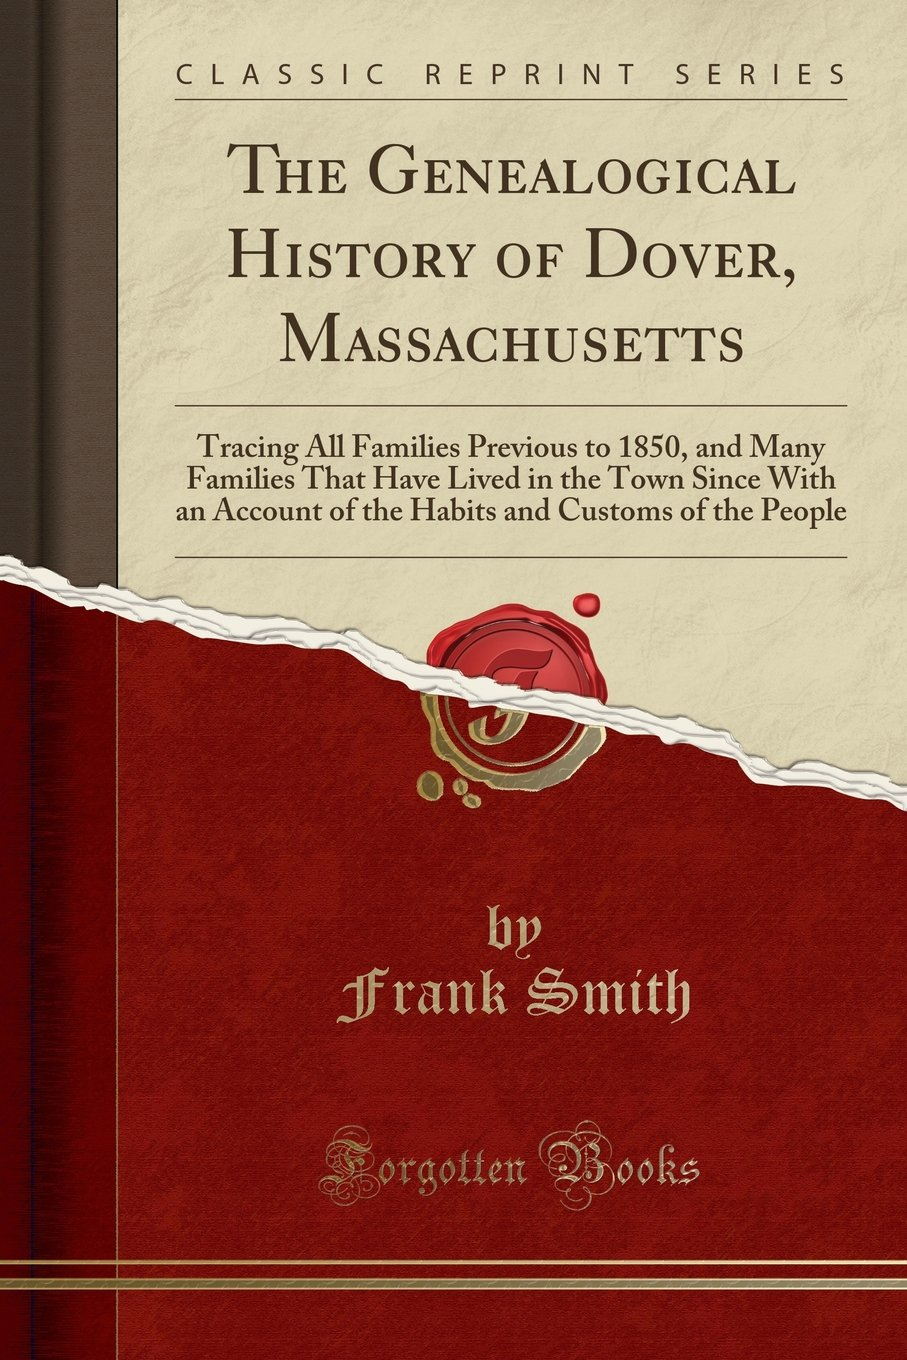 Download The Genealogical History of Dover, Massachusetts: Tracing All Families Previous to 1850, and Many Families That Have Lived in the Town Since With an ... and Customs of the People (Classic Reprint) PDF